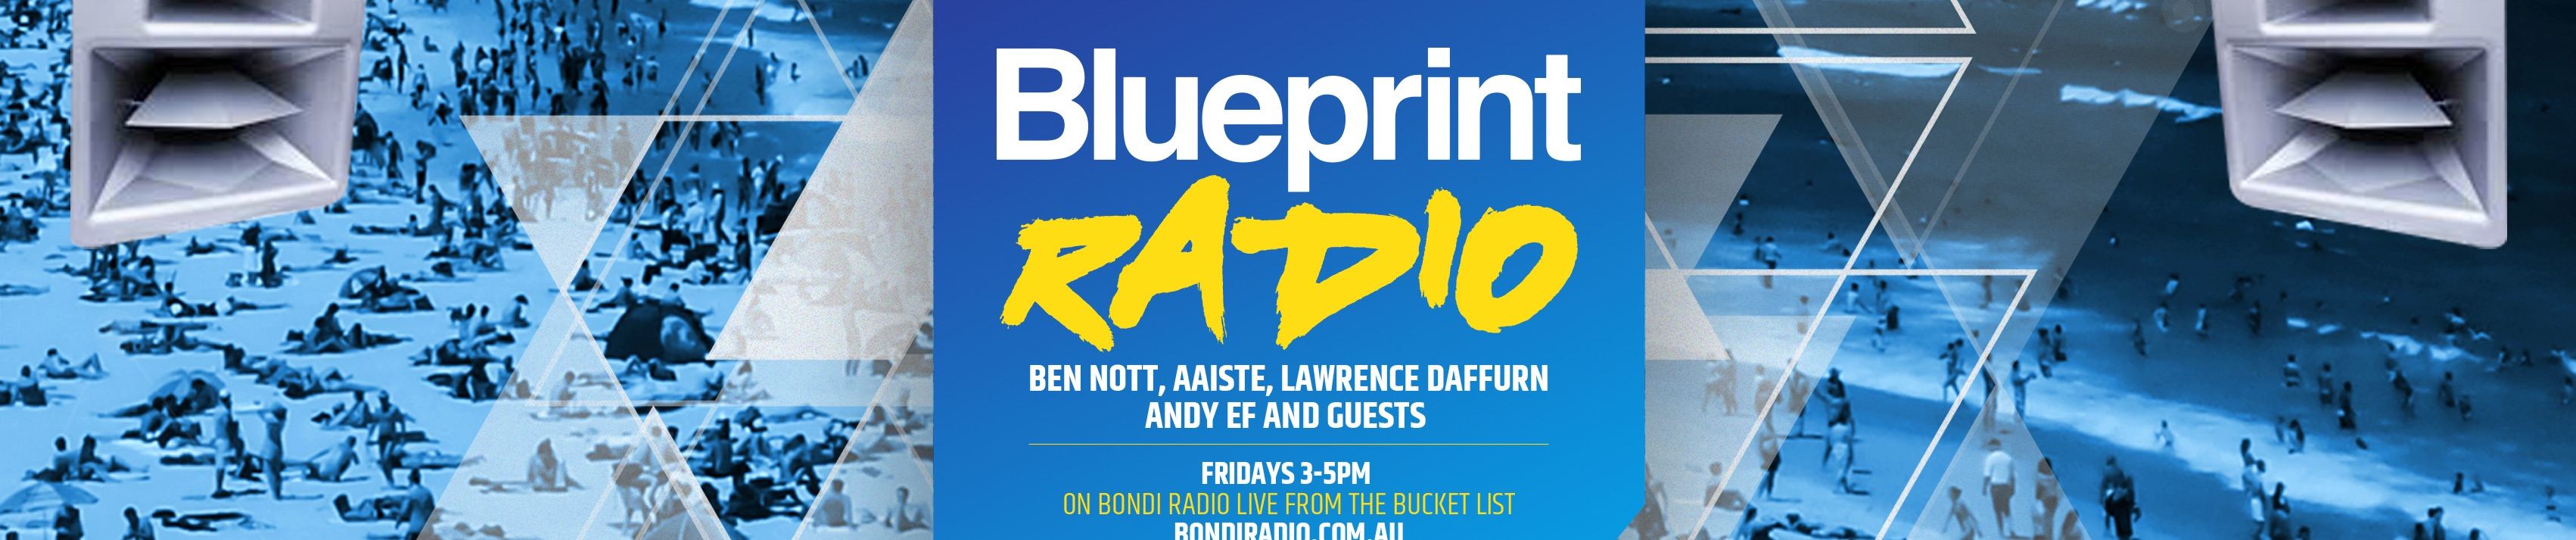 Ben nott blueprint free listening on soundcloud malvernweather Choice Image